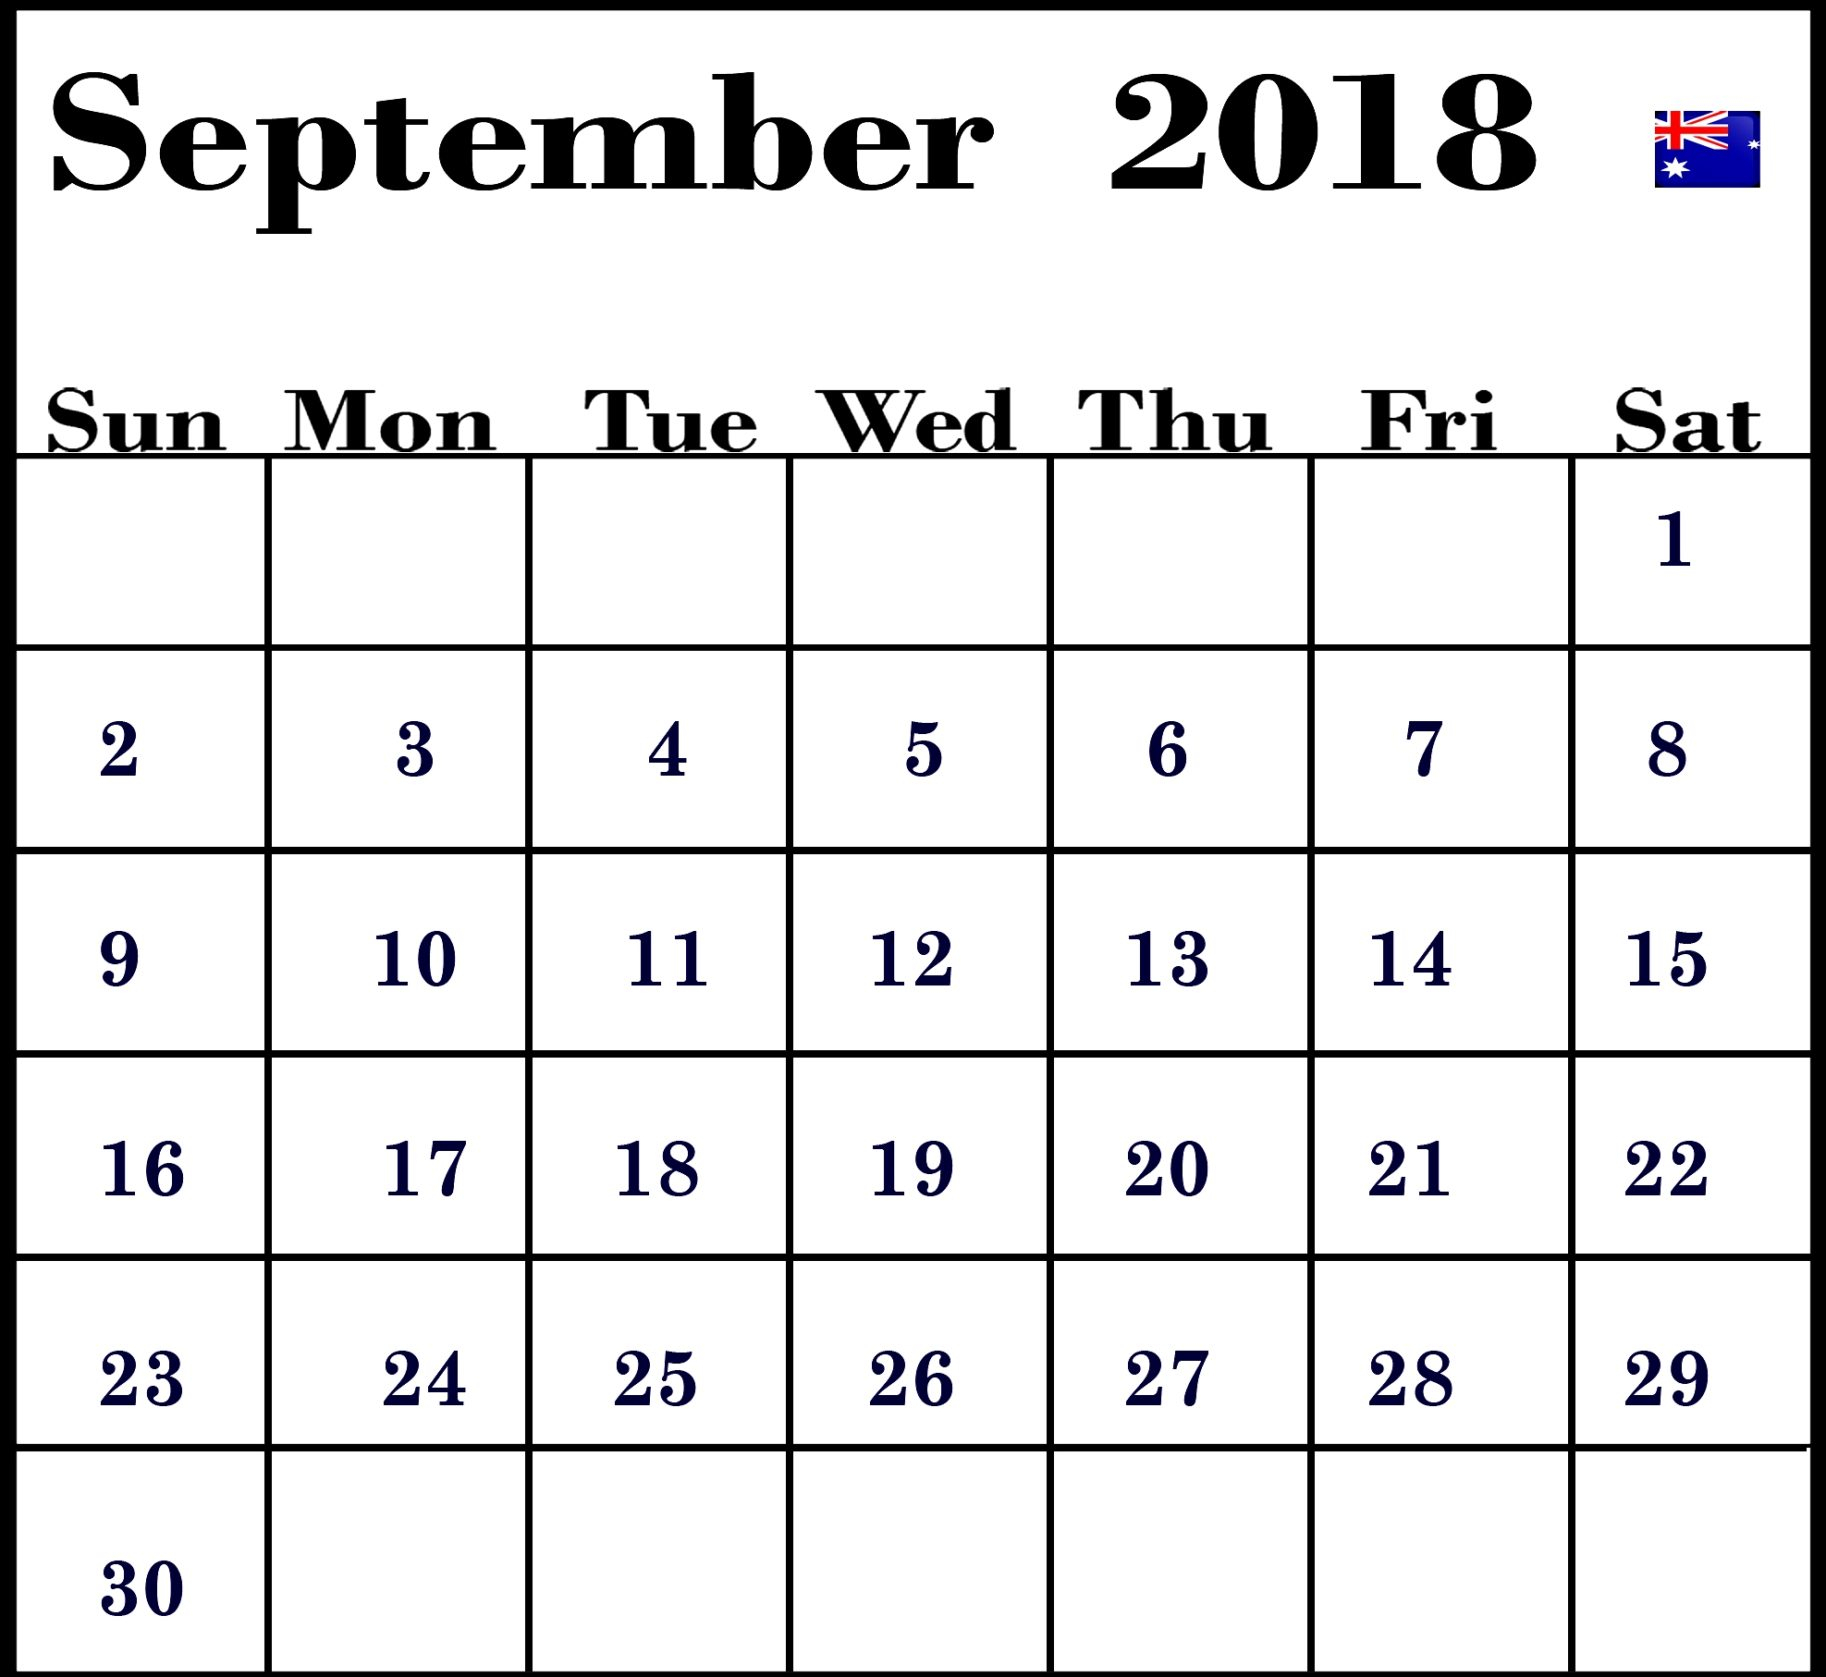 September 2018 Calendar Australia | Business Calendar Templates in 2018 Calendar Australia Printable